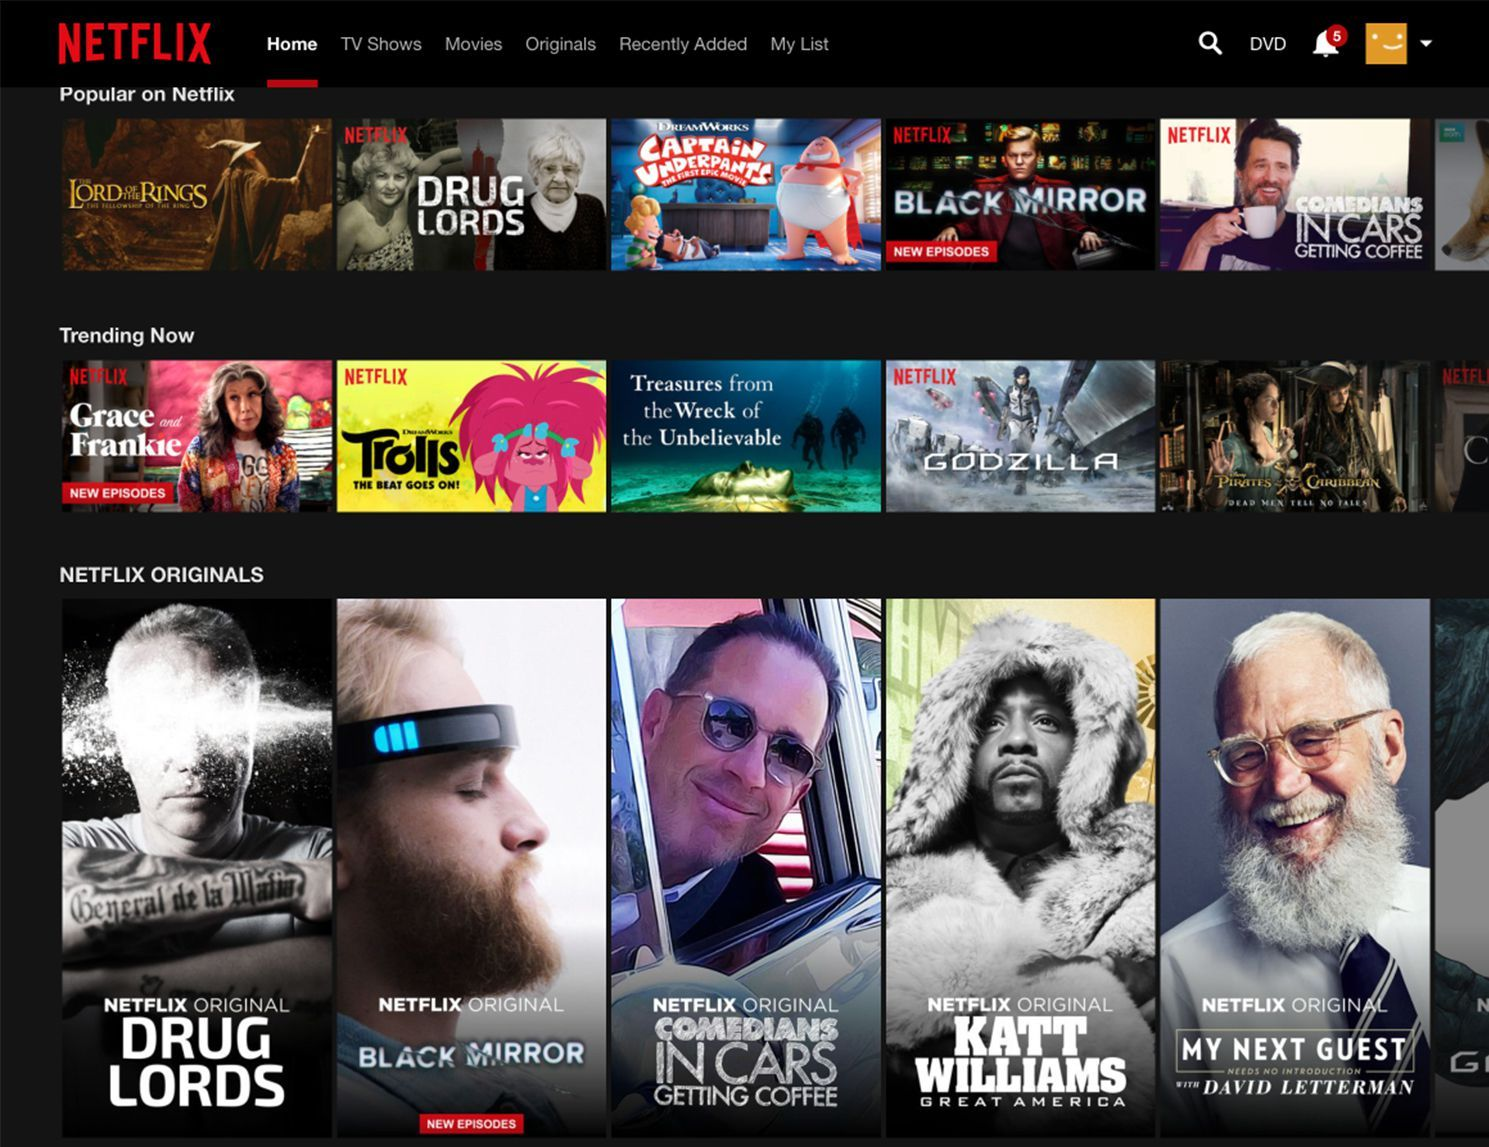 Cancel netflix from any device you may have with images